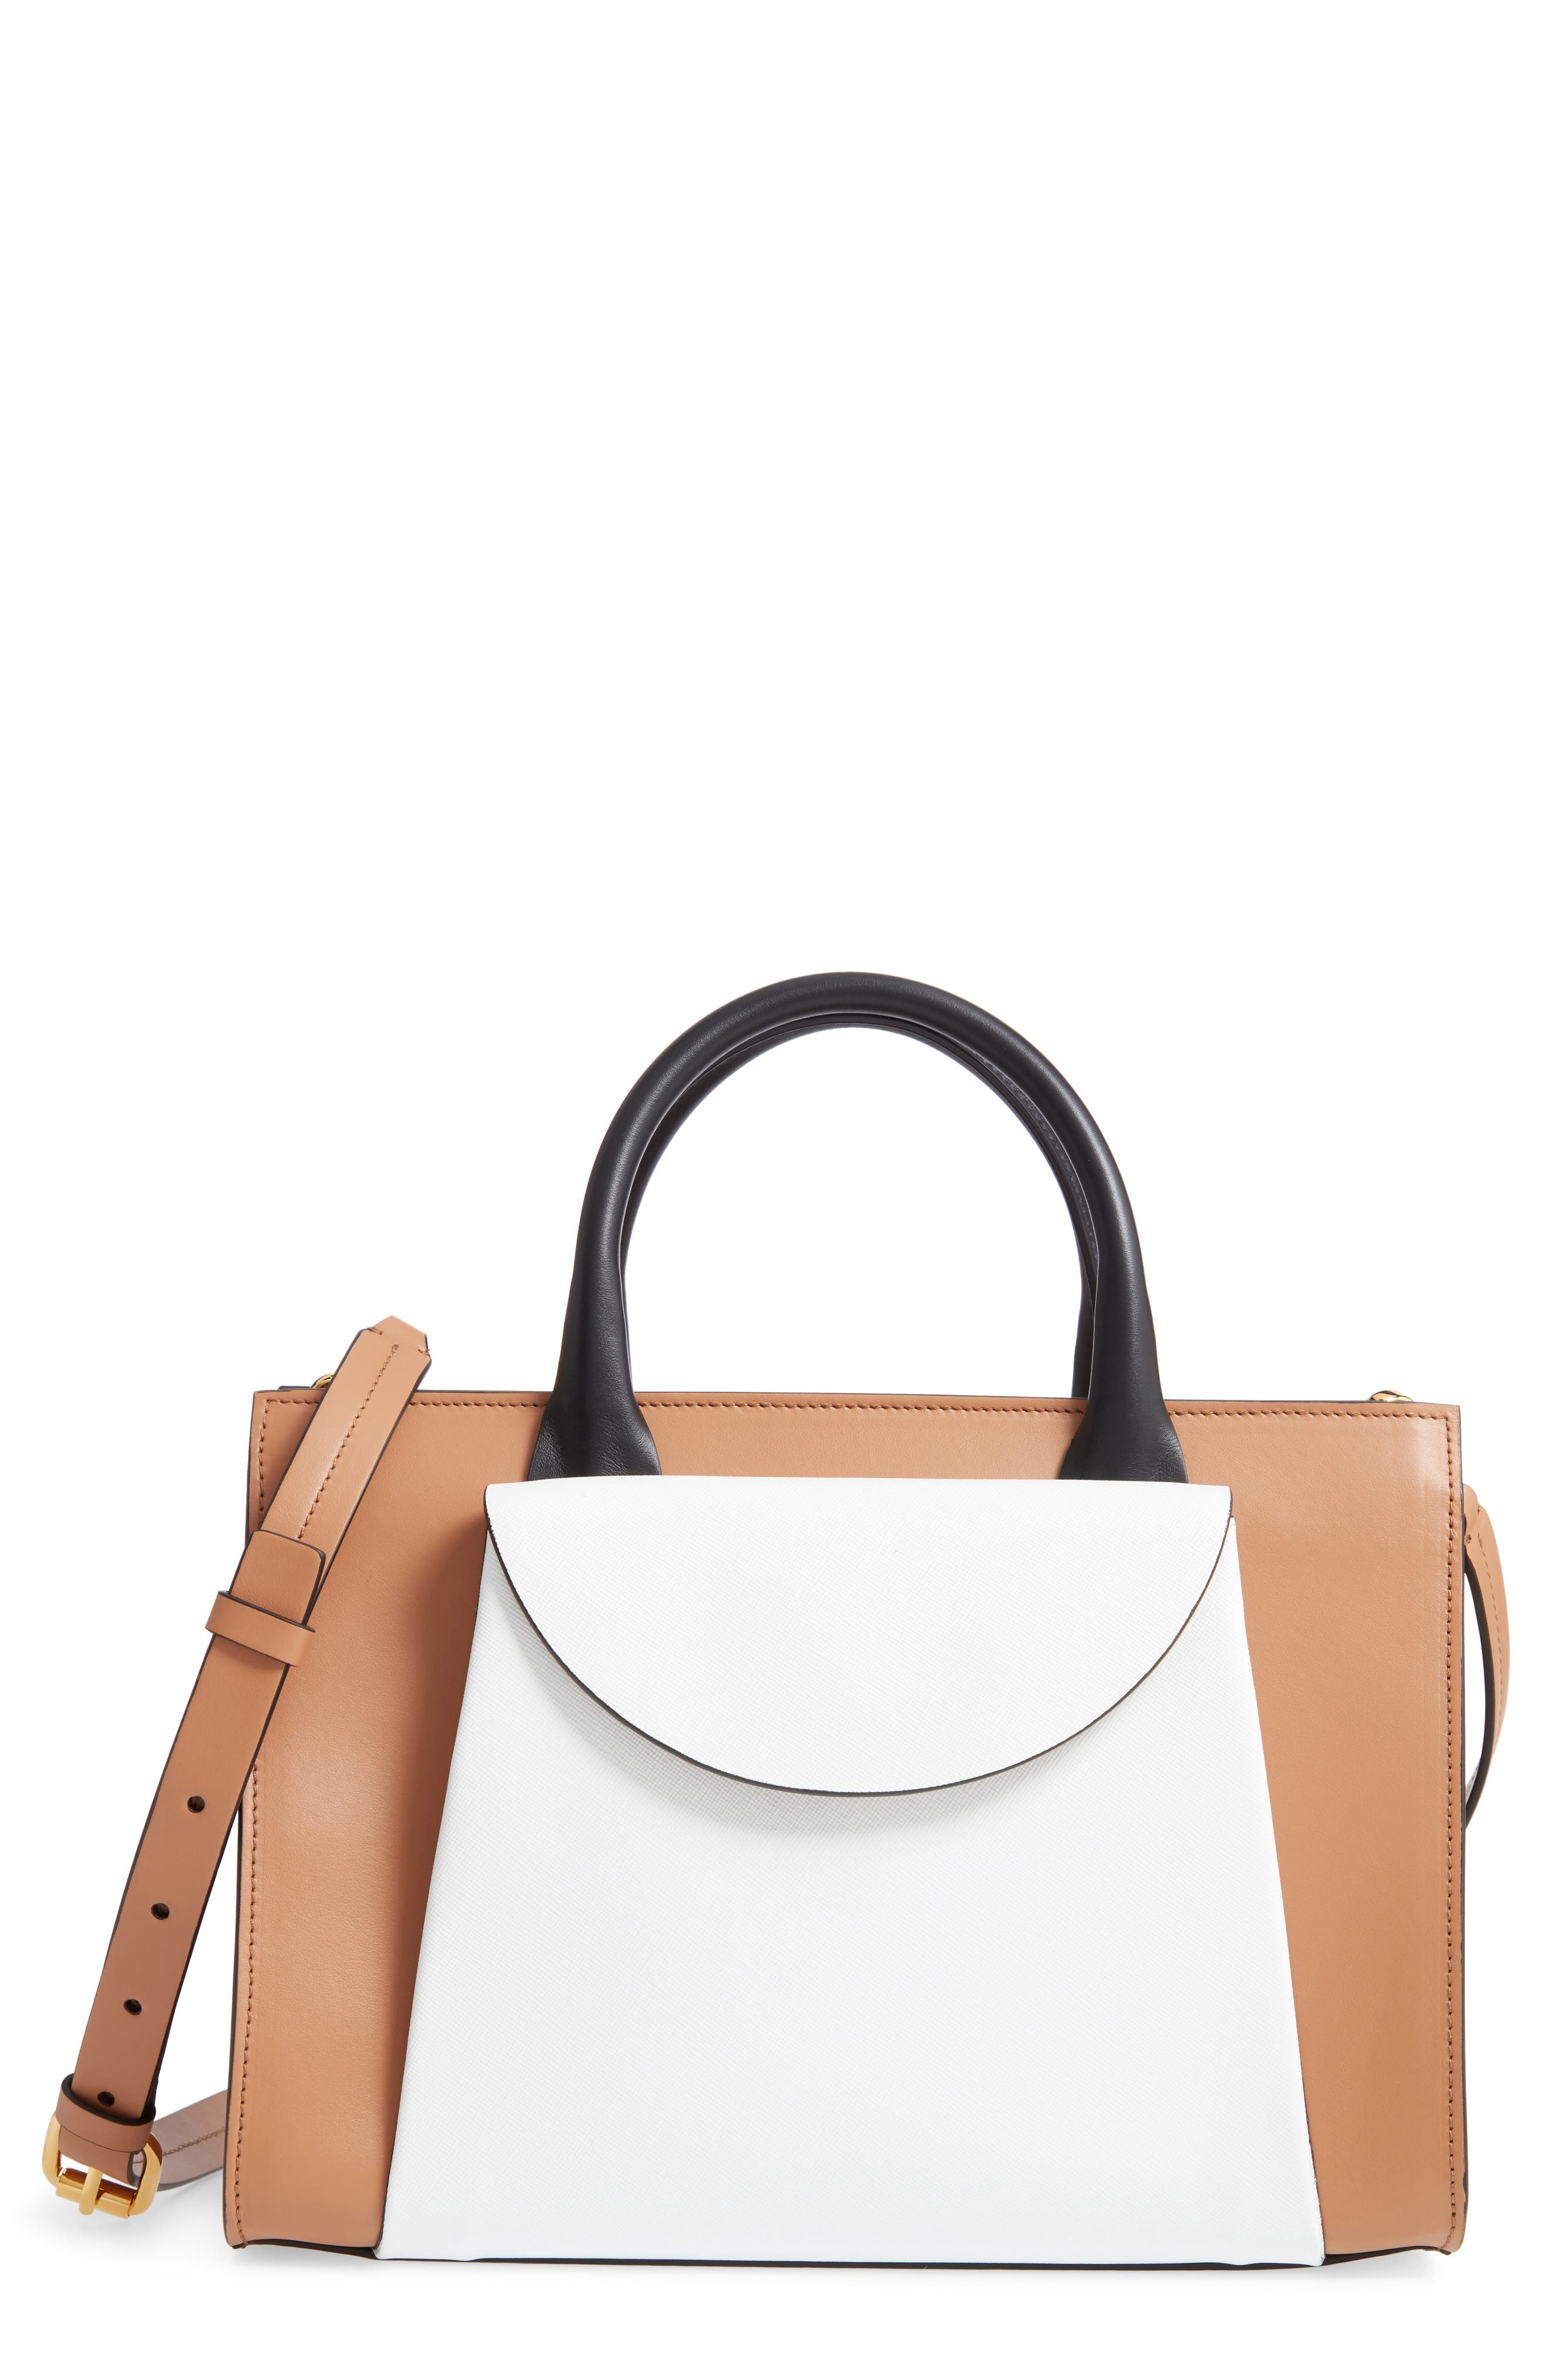 MARNI Medium Law Colorblock Top Handle Satchel, Main, color, POMPEII/ LIMESTONE/ BLACK